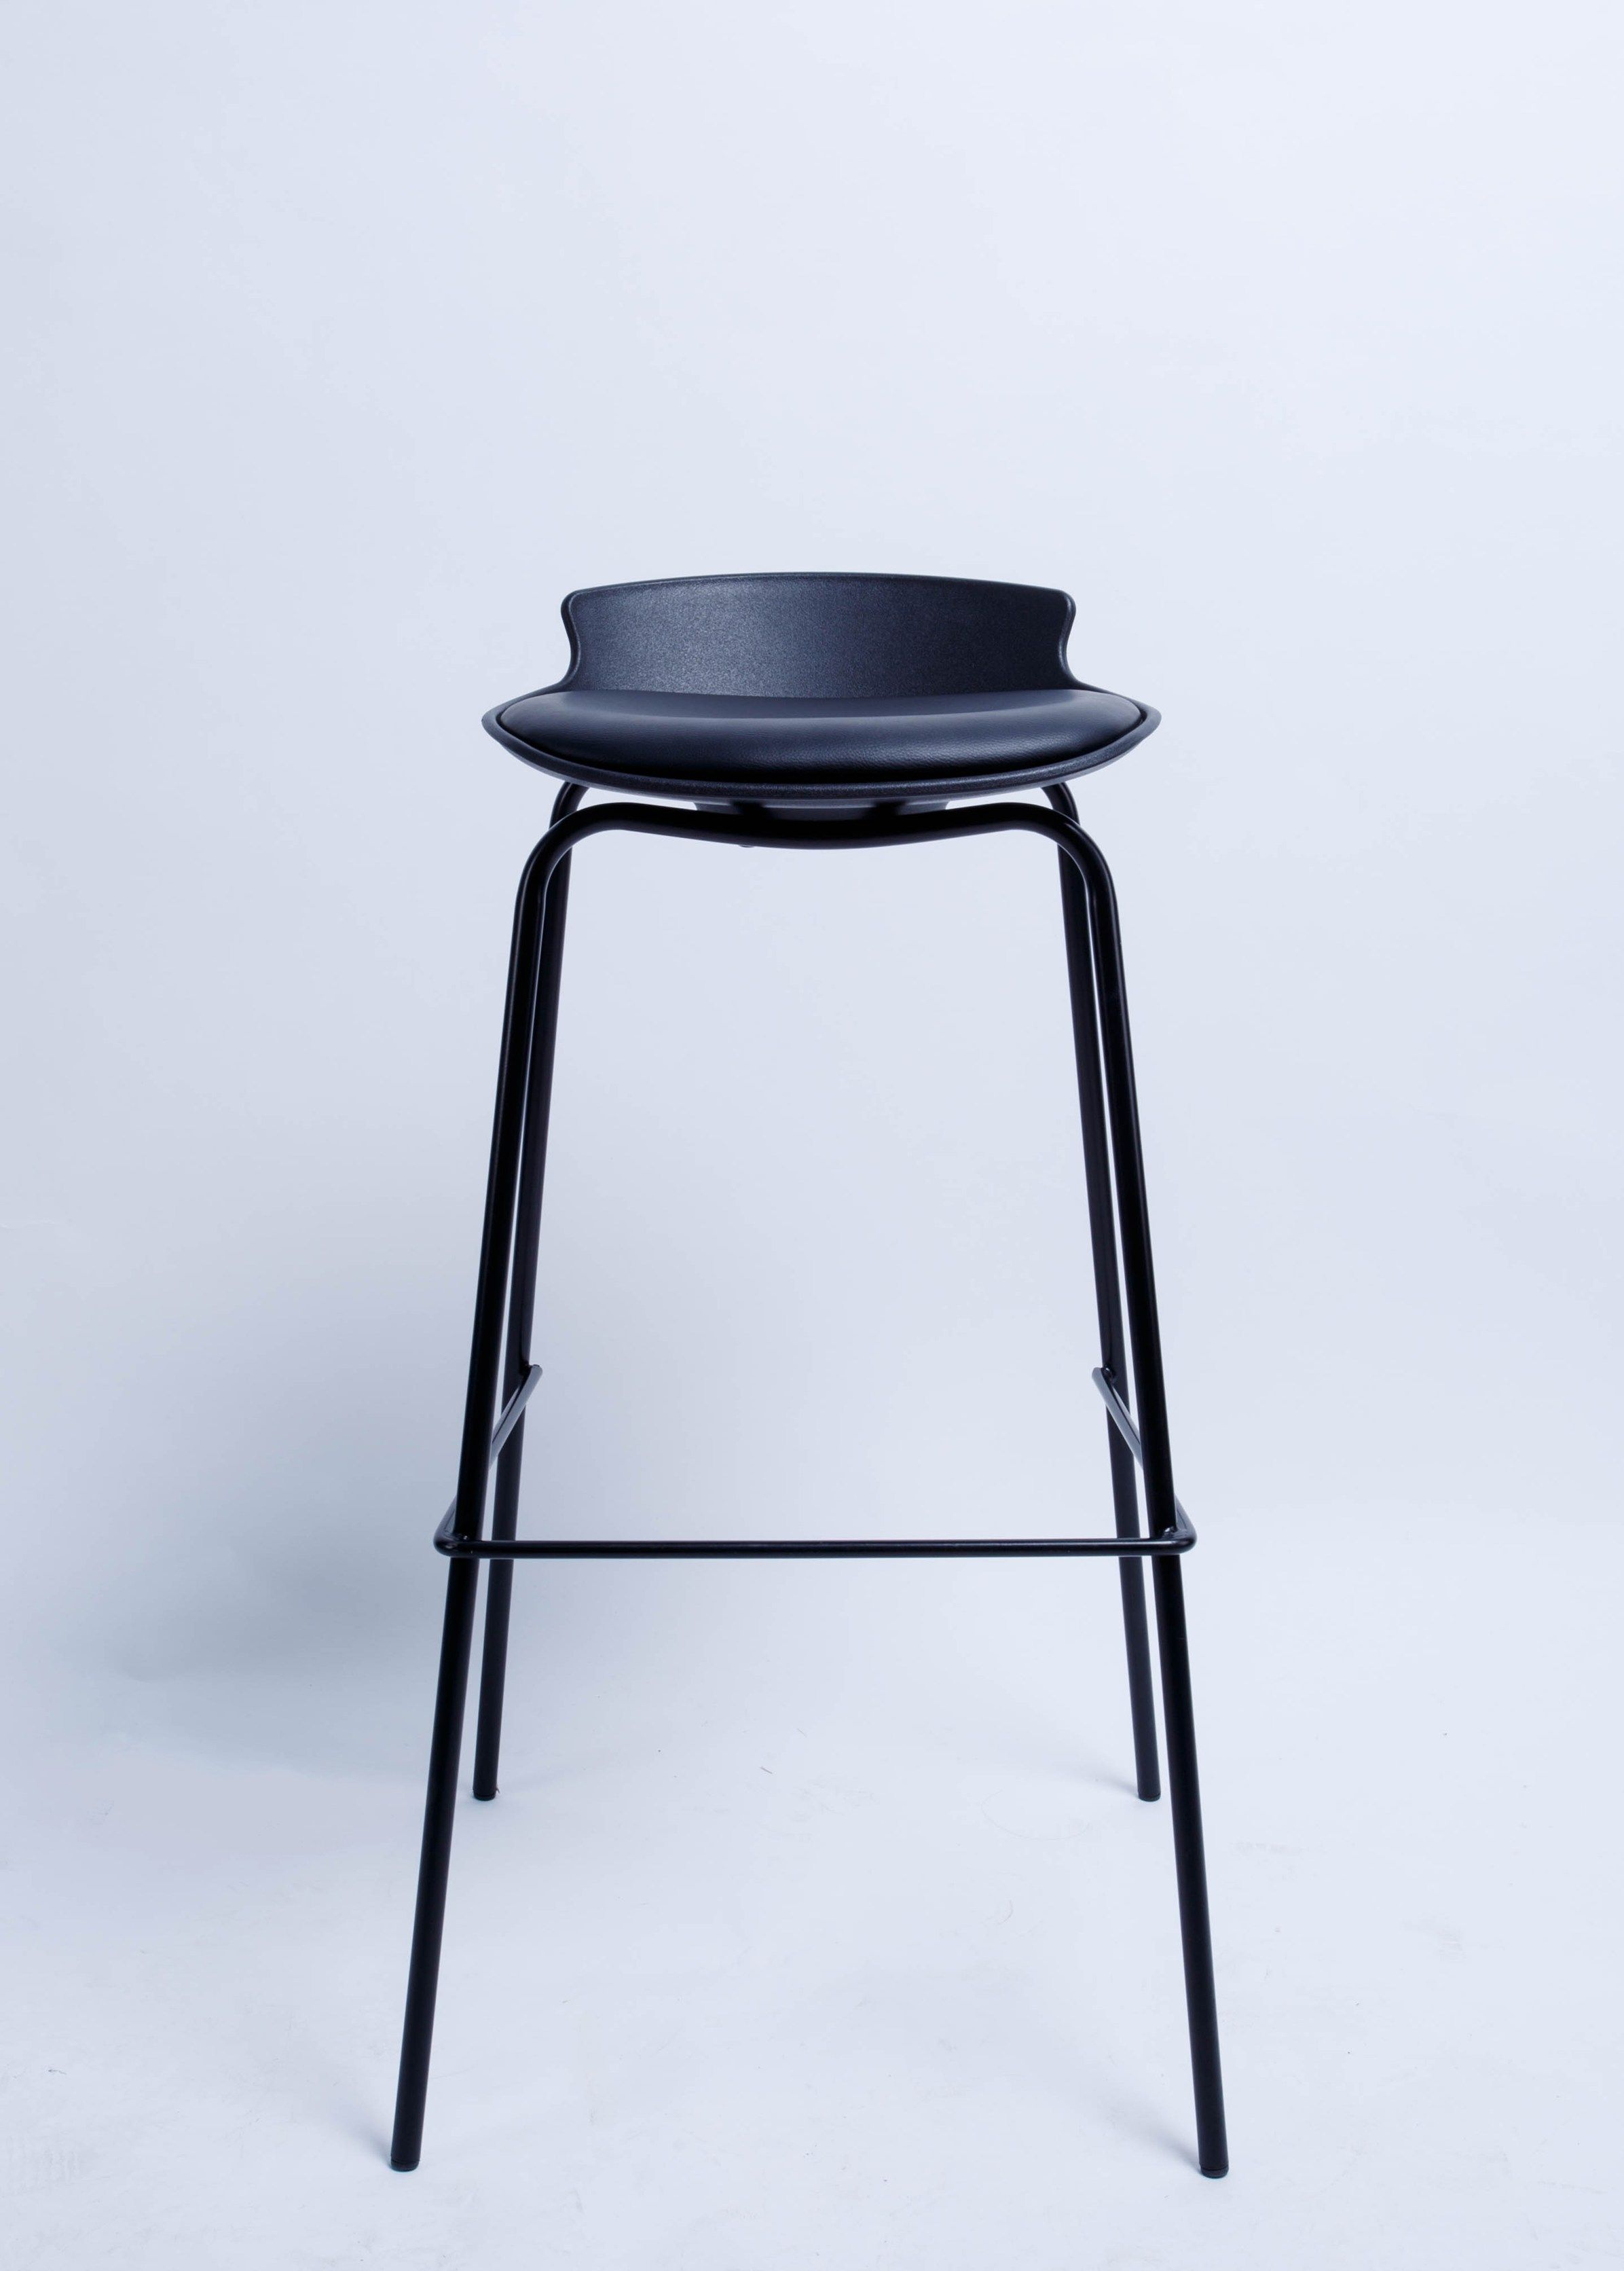 Dash Stool By Grado Design Furnitures Design Stefano Campioni